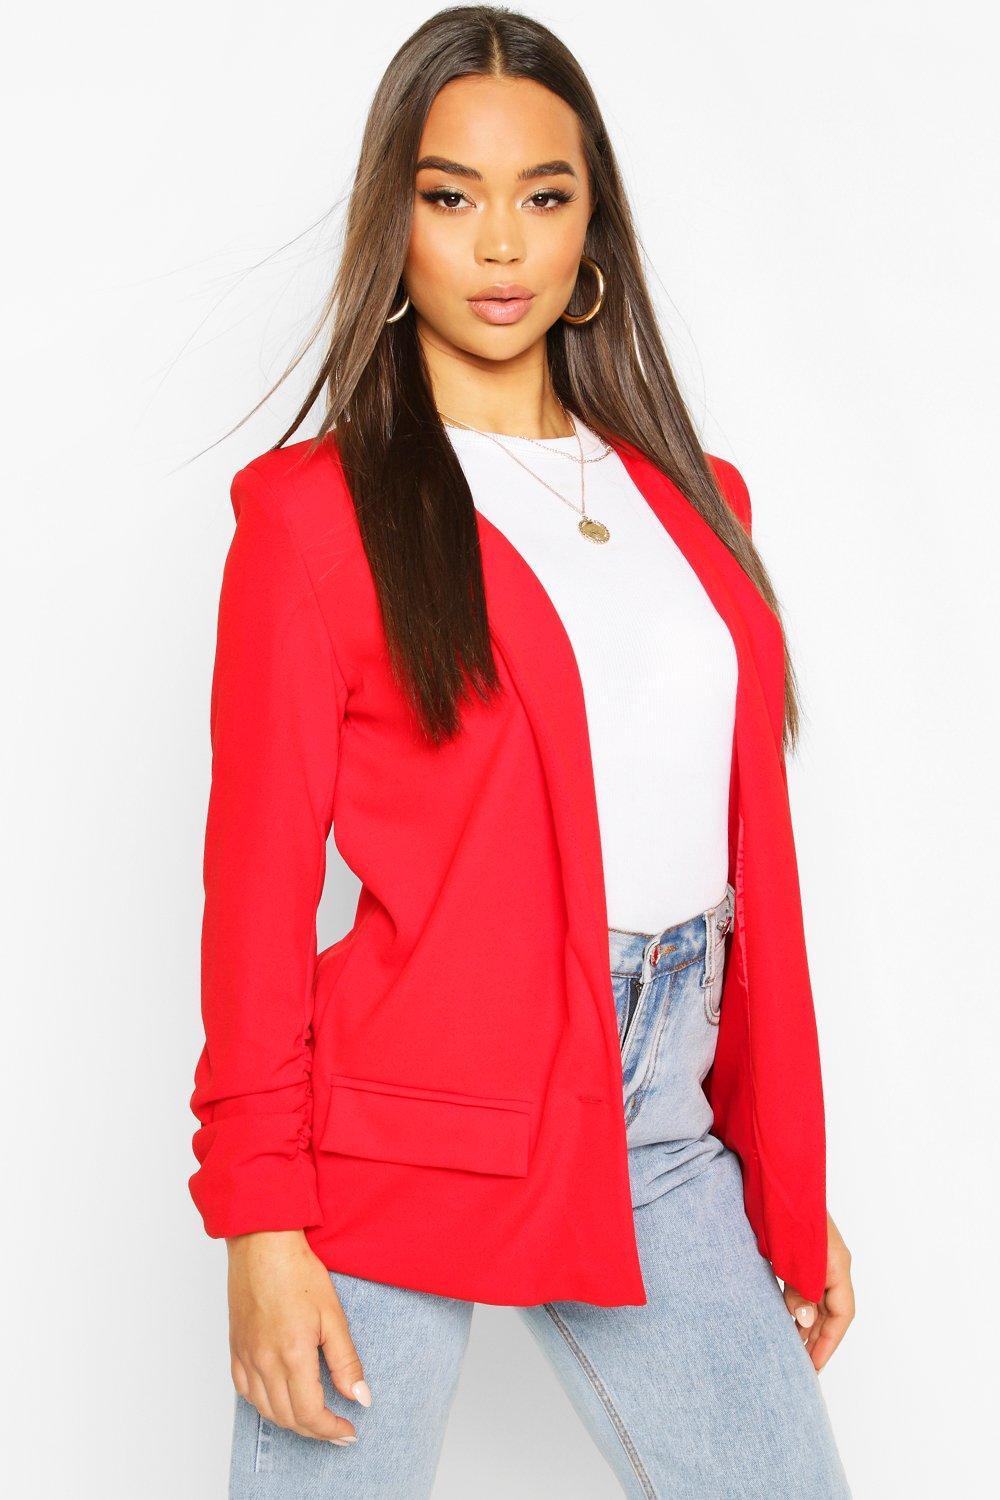 boohoo Womens Oversized V Detail Ruche Sleeve Blazer - Red - 10, Red